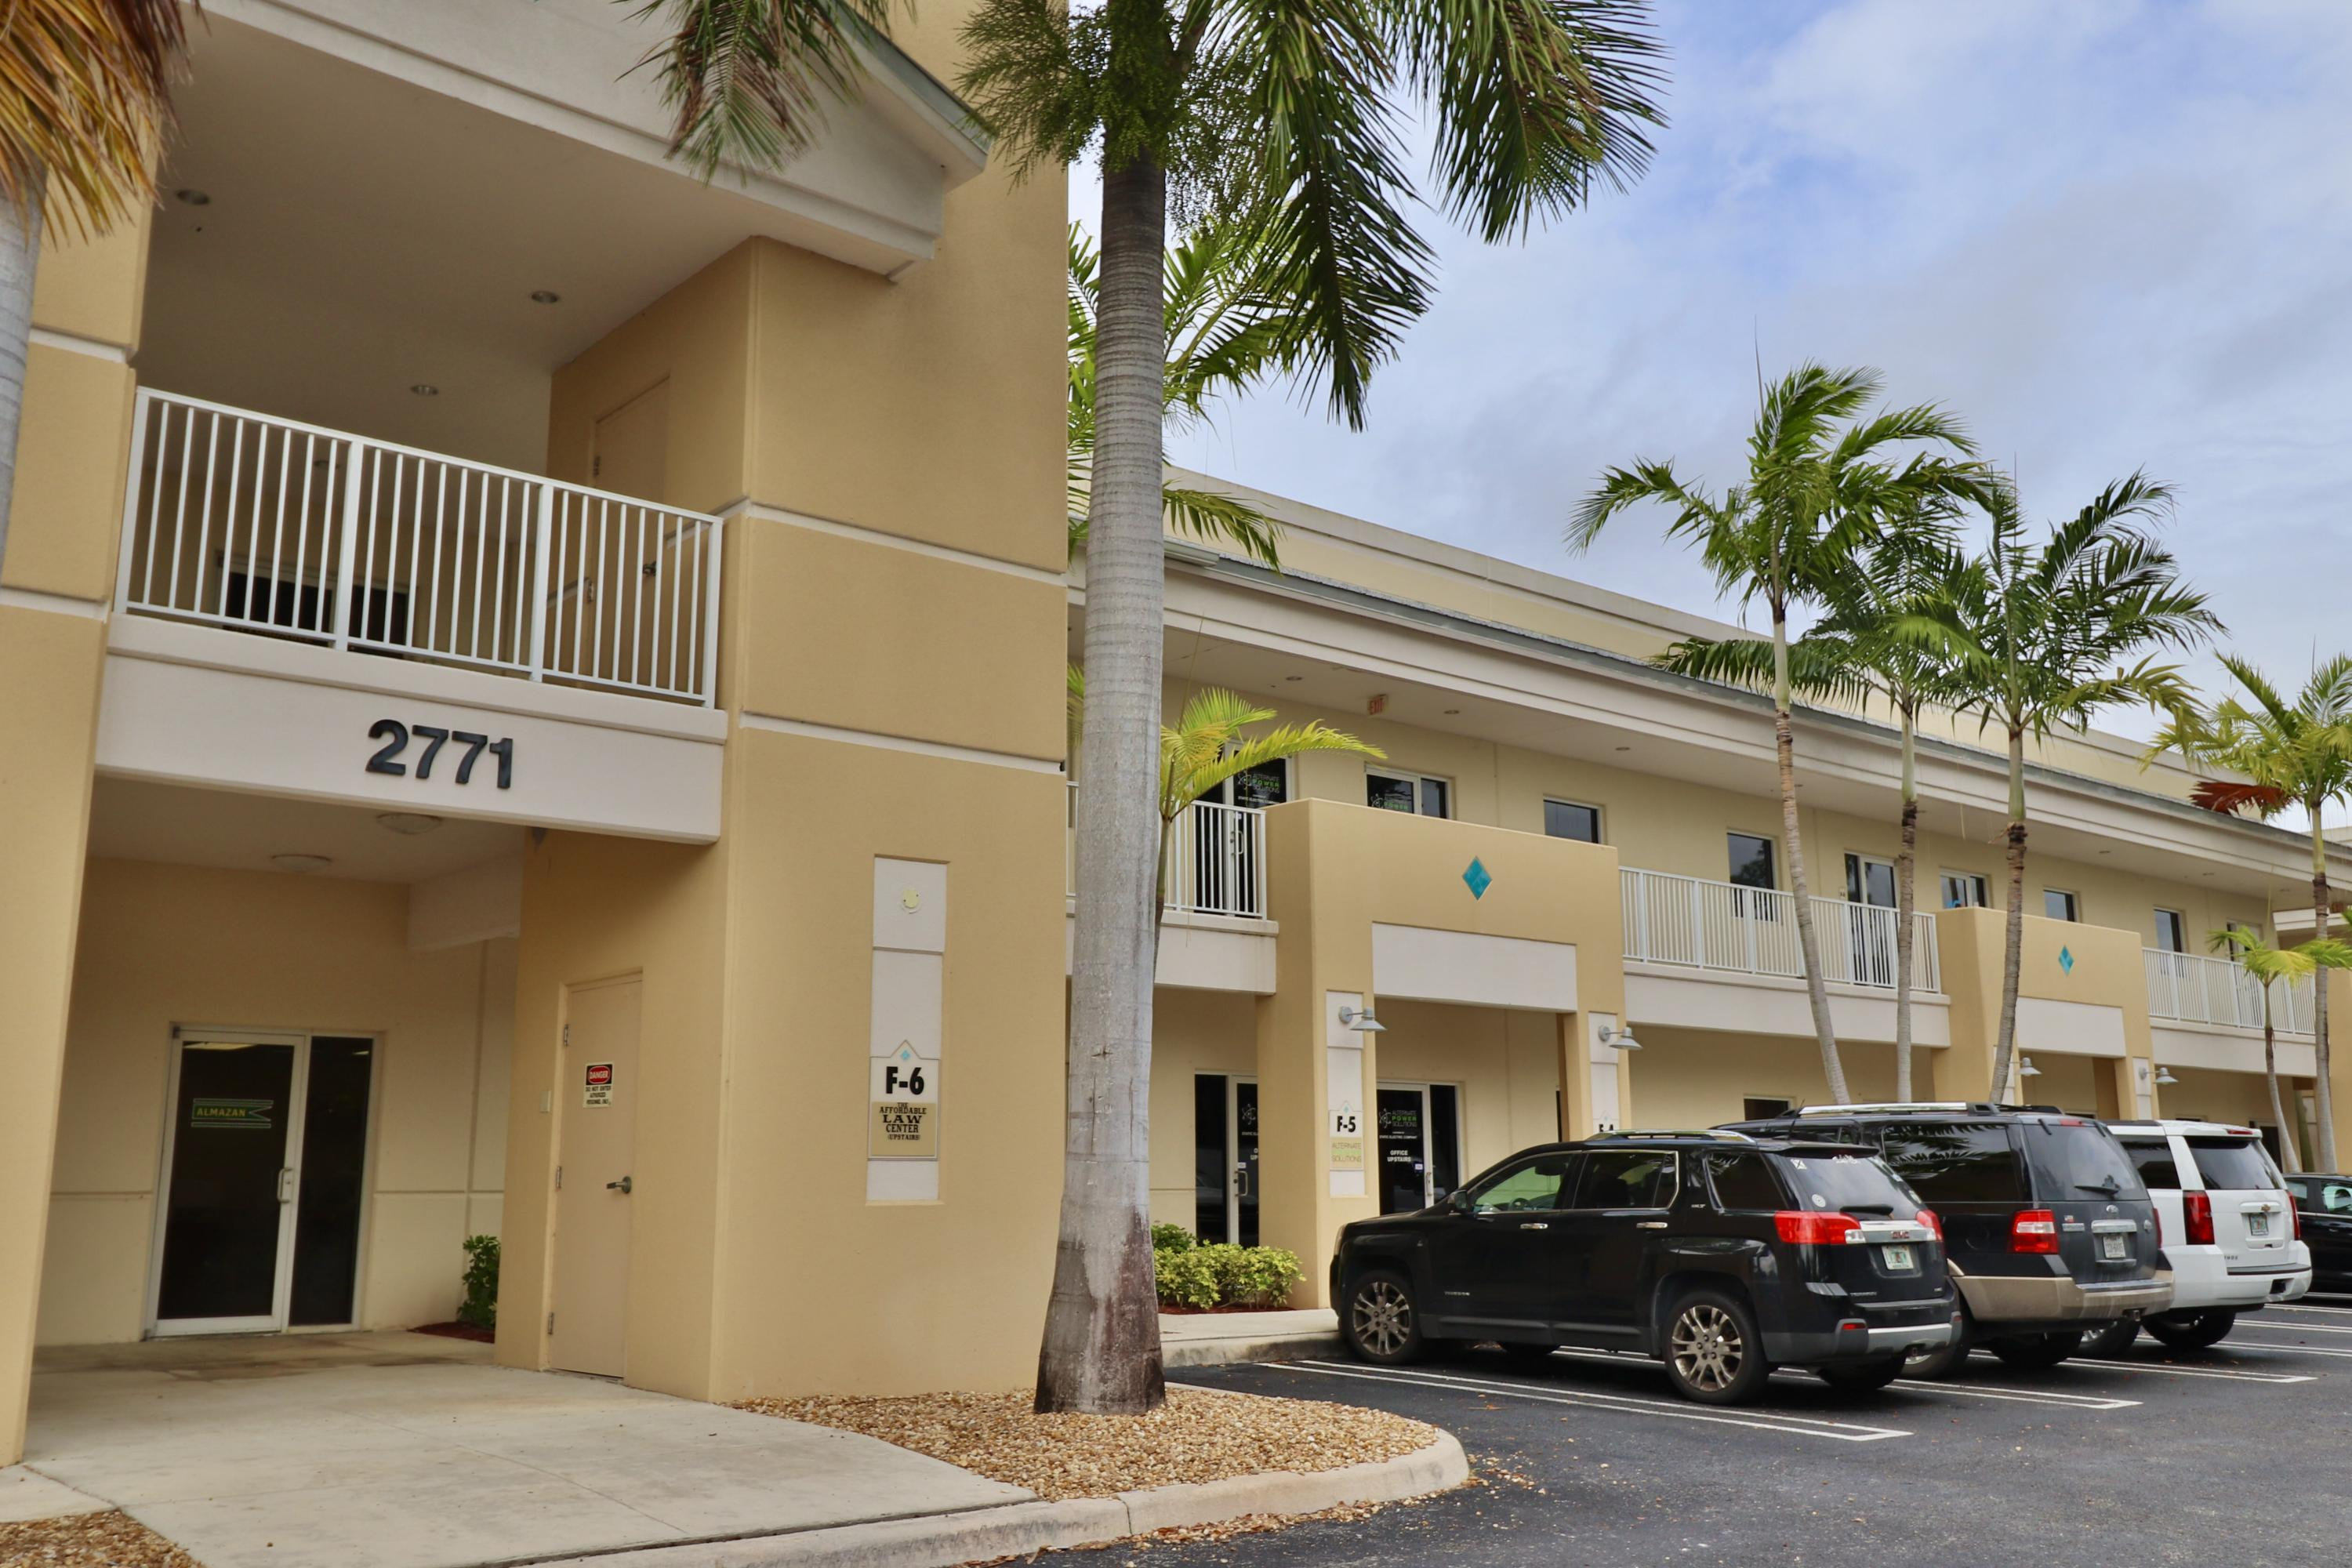 Home for sale in  West Palm Beach Florida